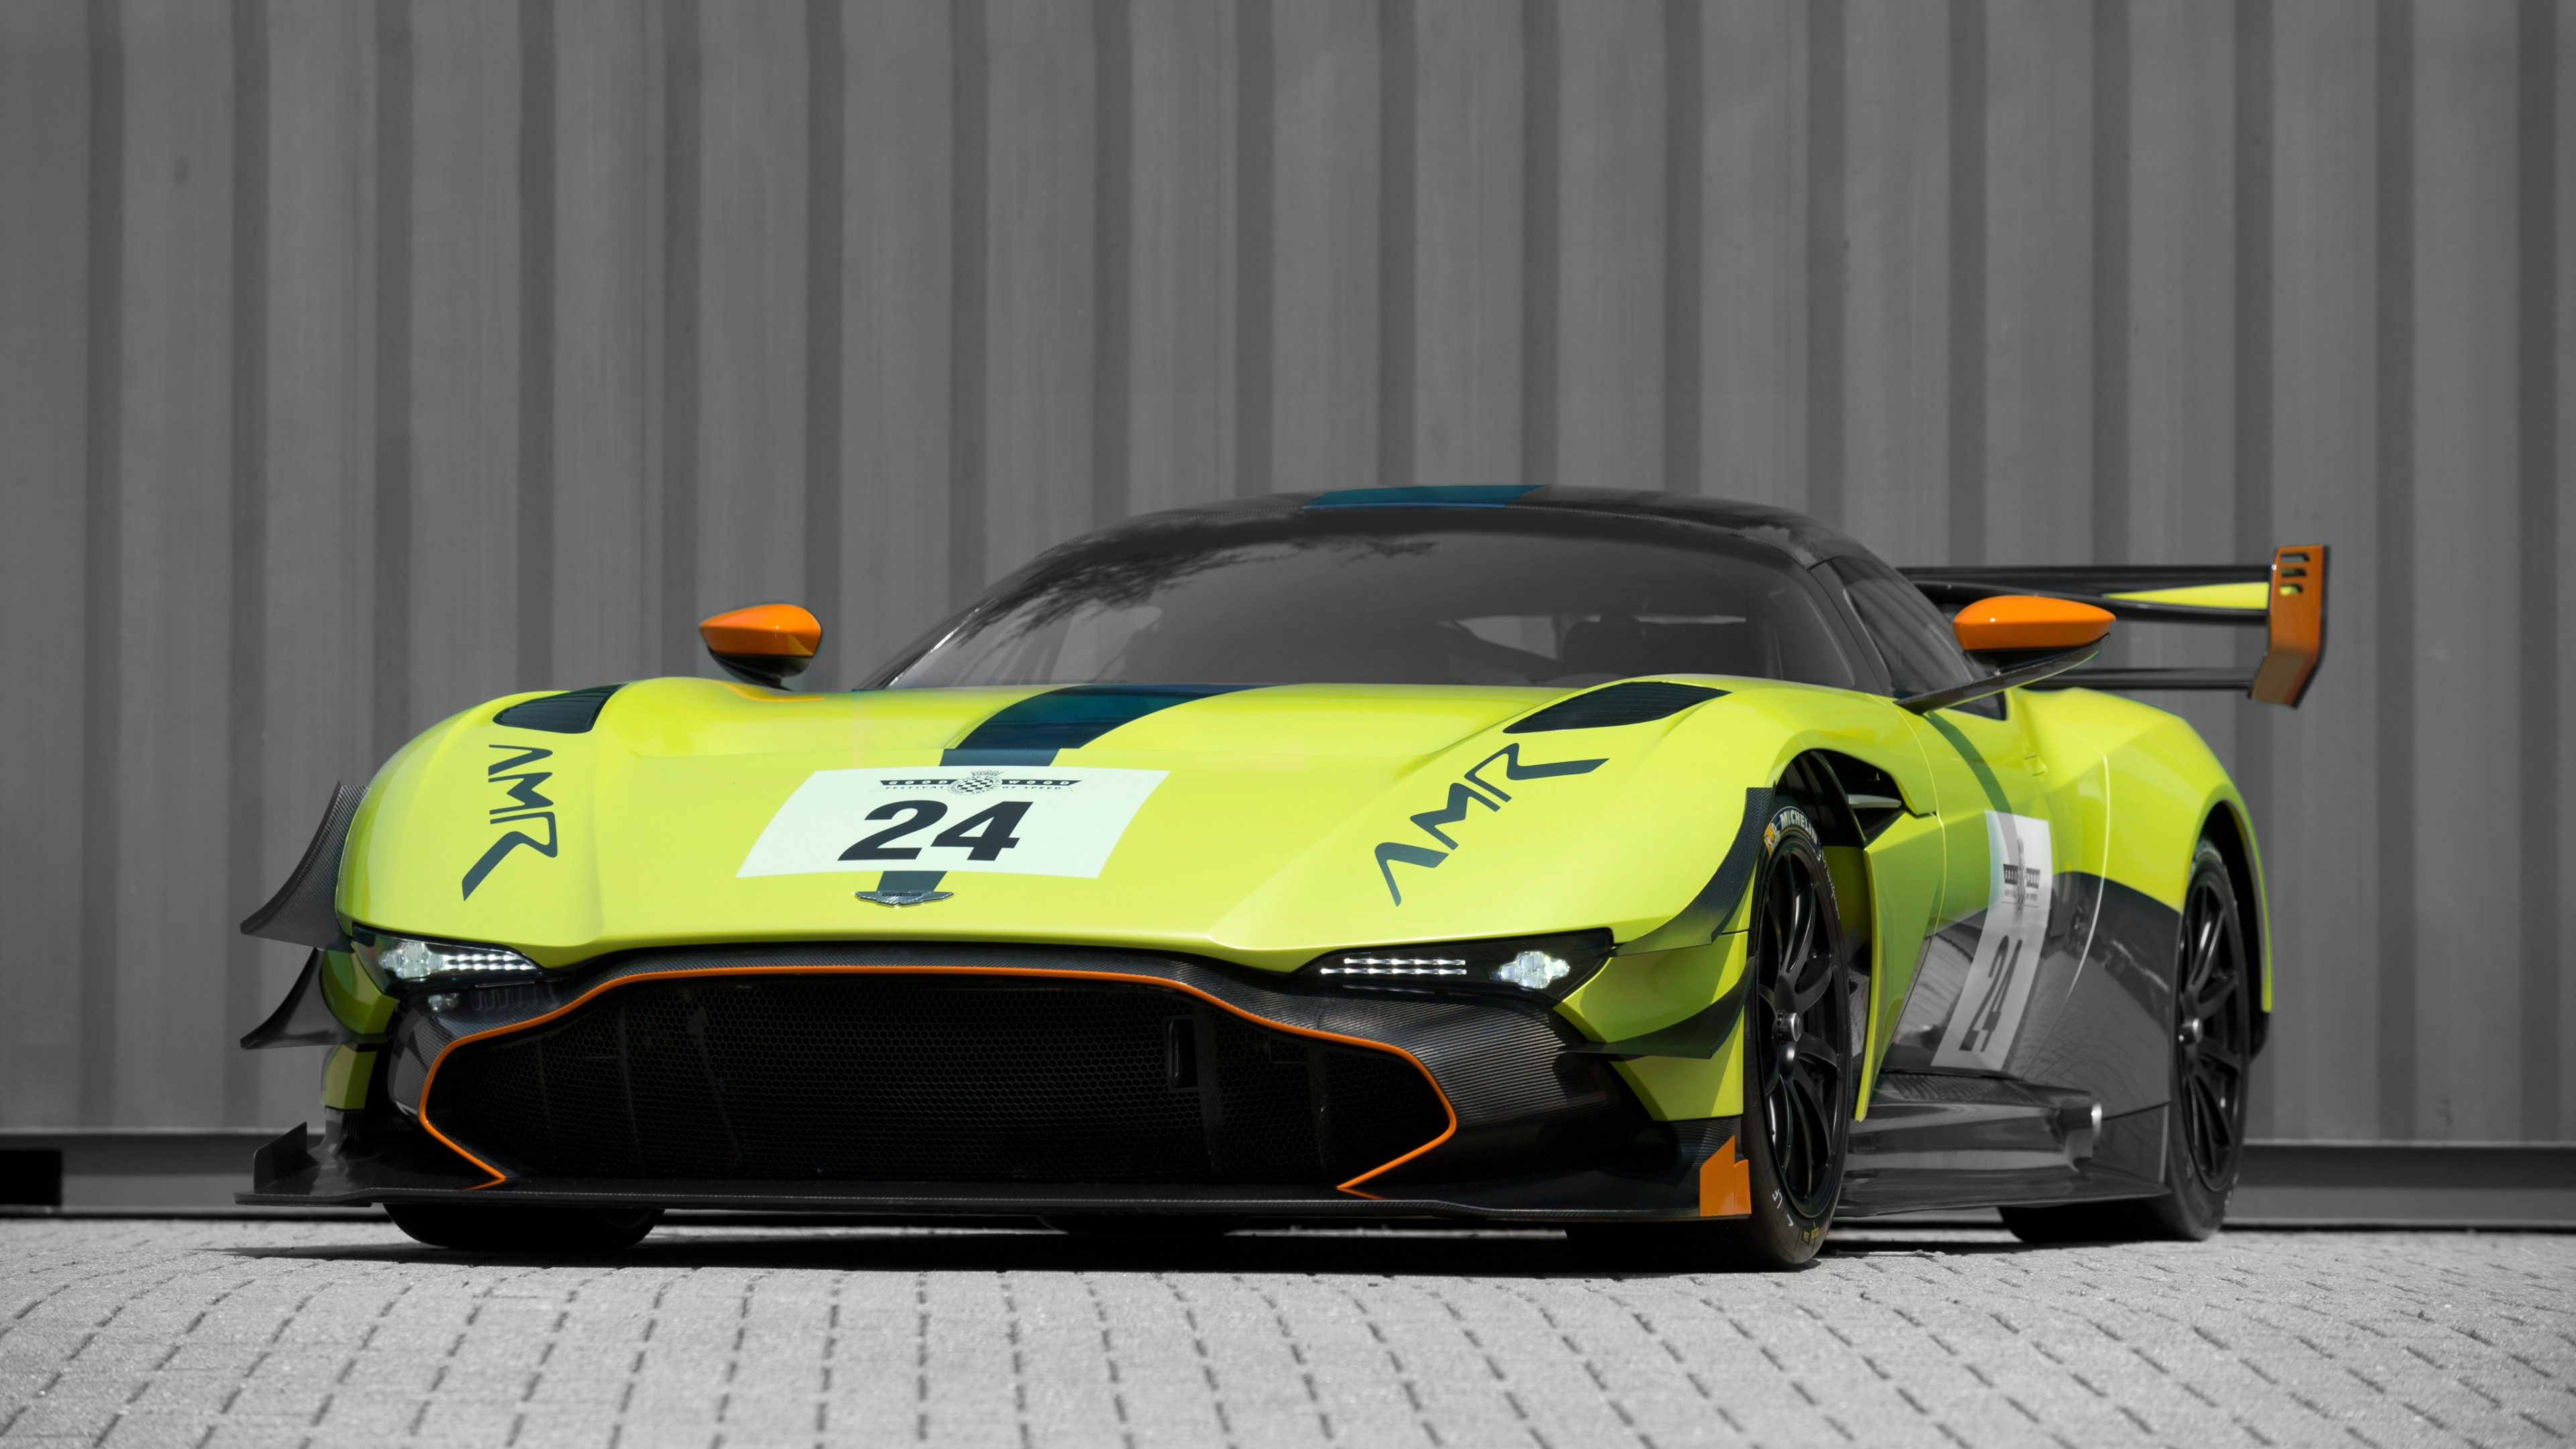 Aston Martin Vulcan Amr Pro 2018 4k Wallpaper Hd Car